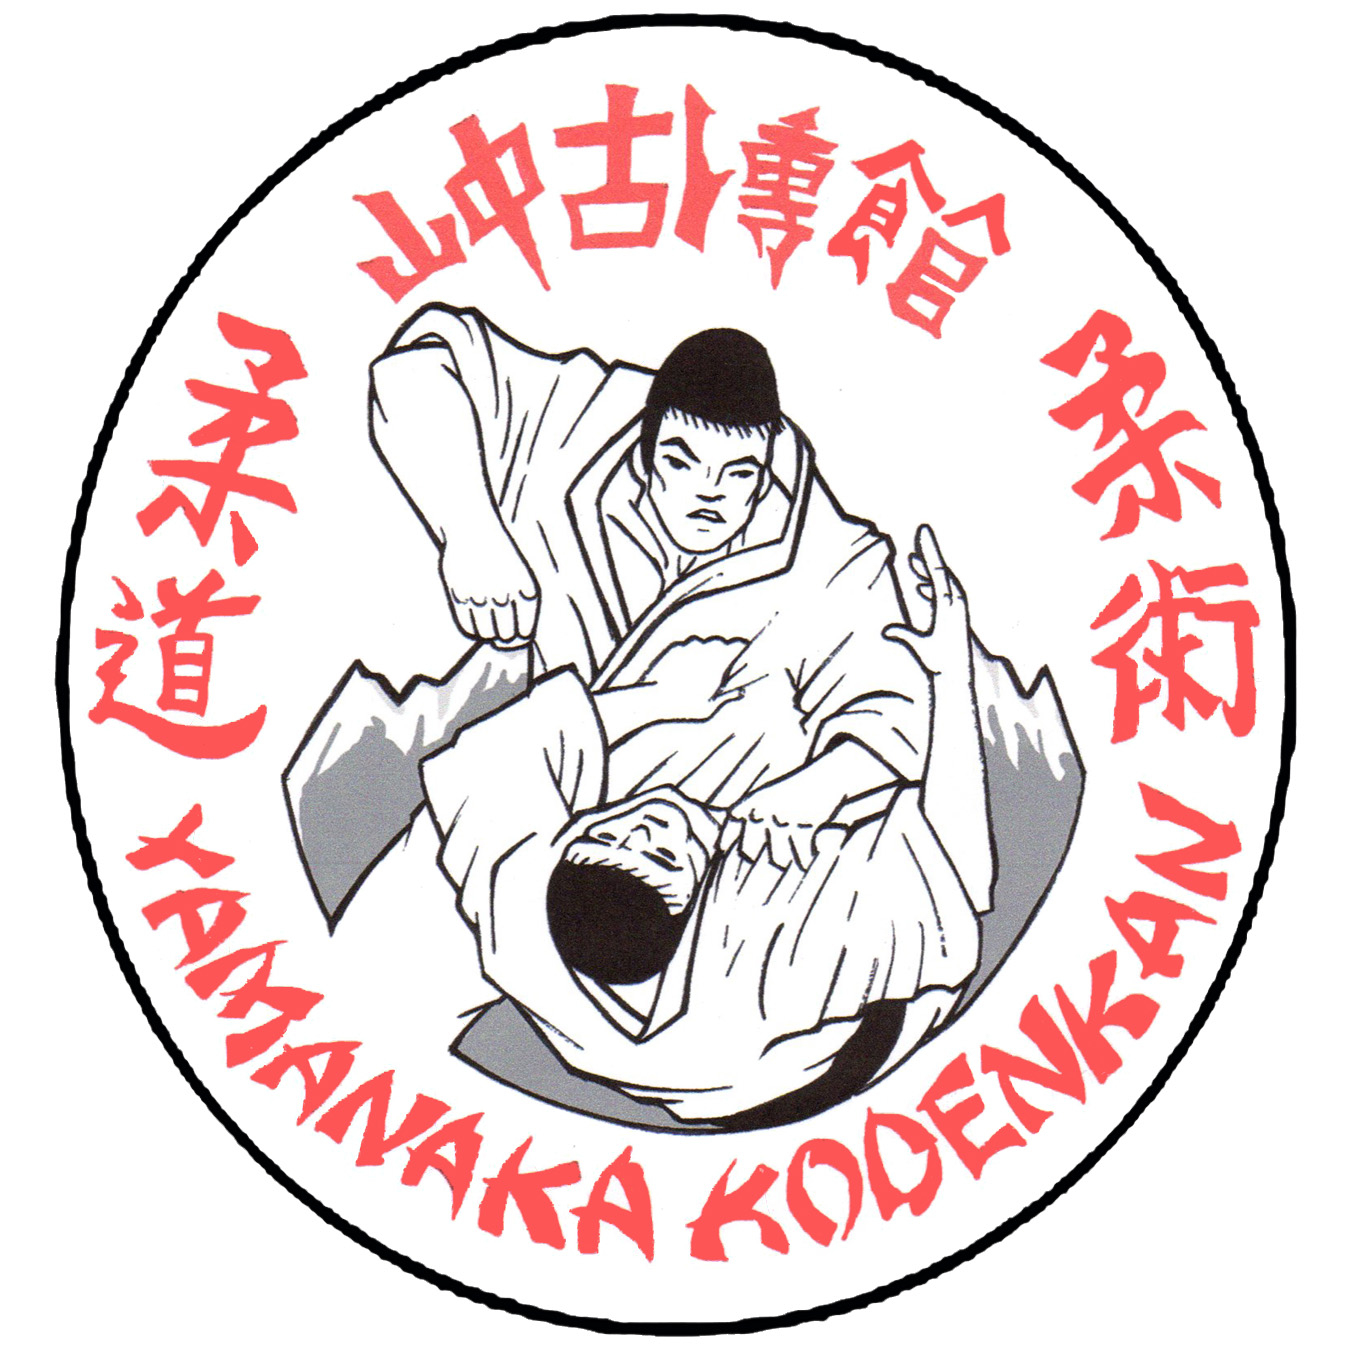 Martial arts mart coupon code